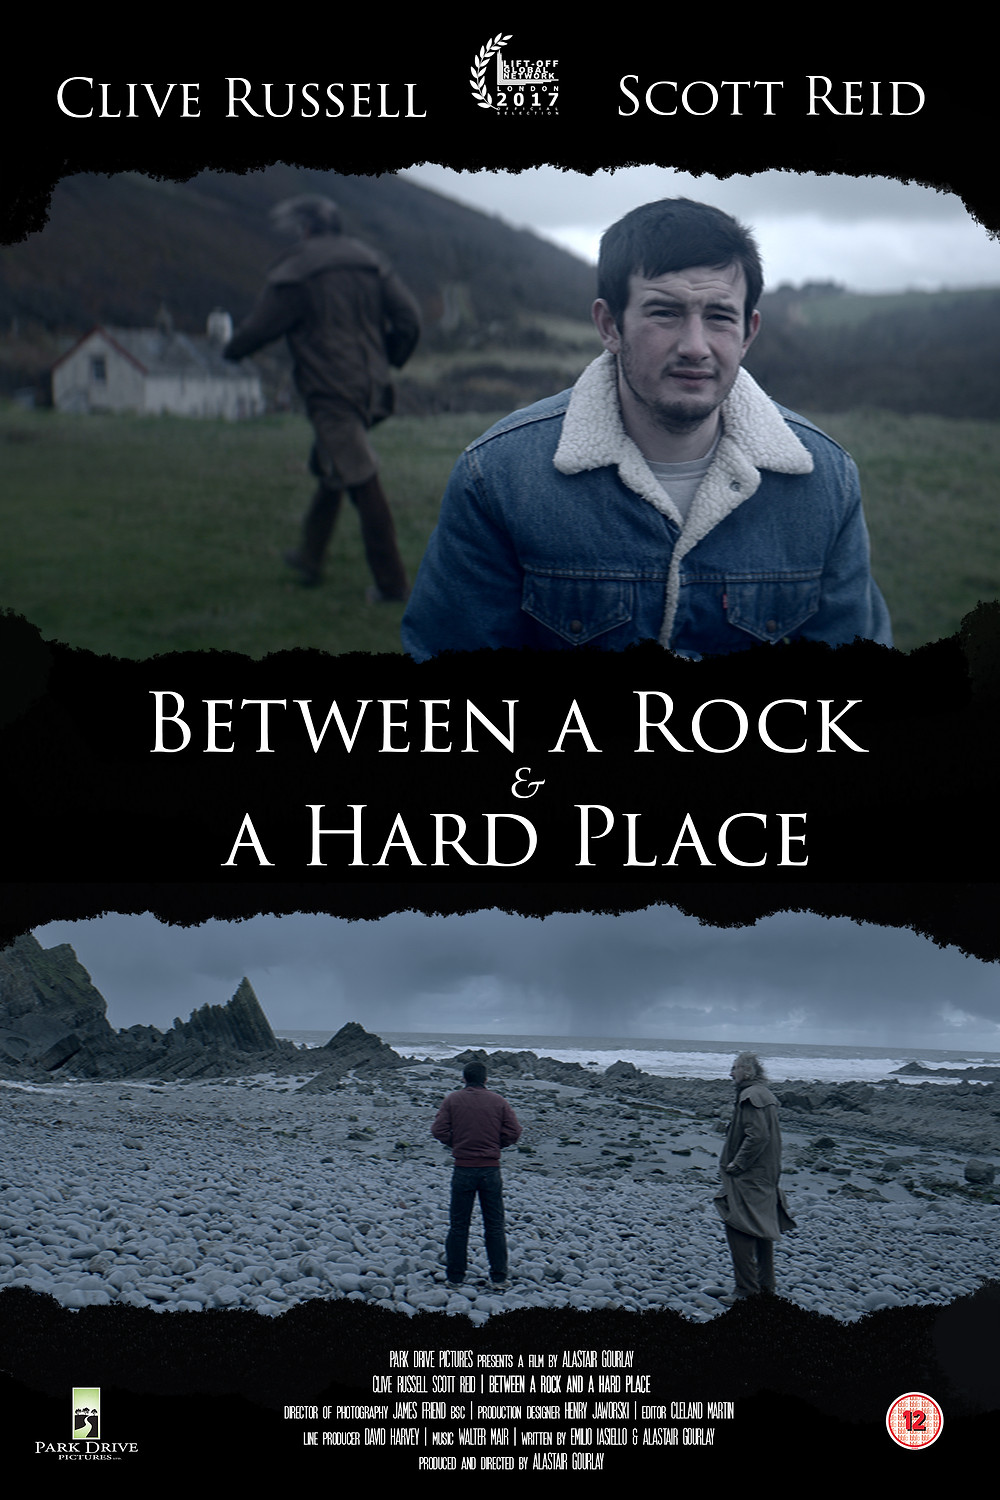 Between a Rock and a Hard Place short film